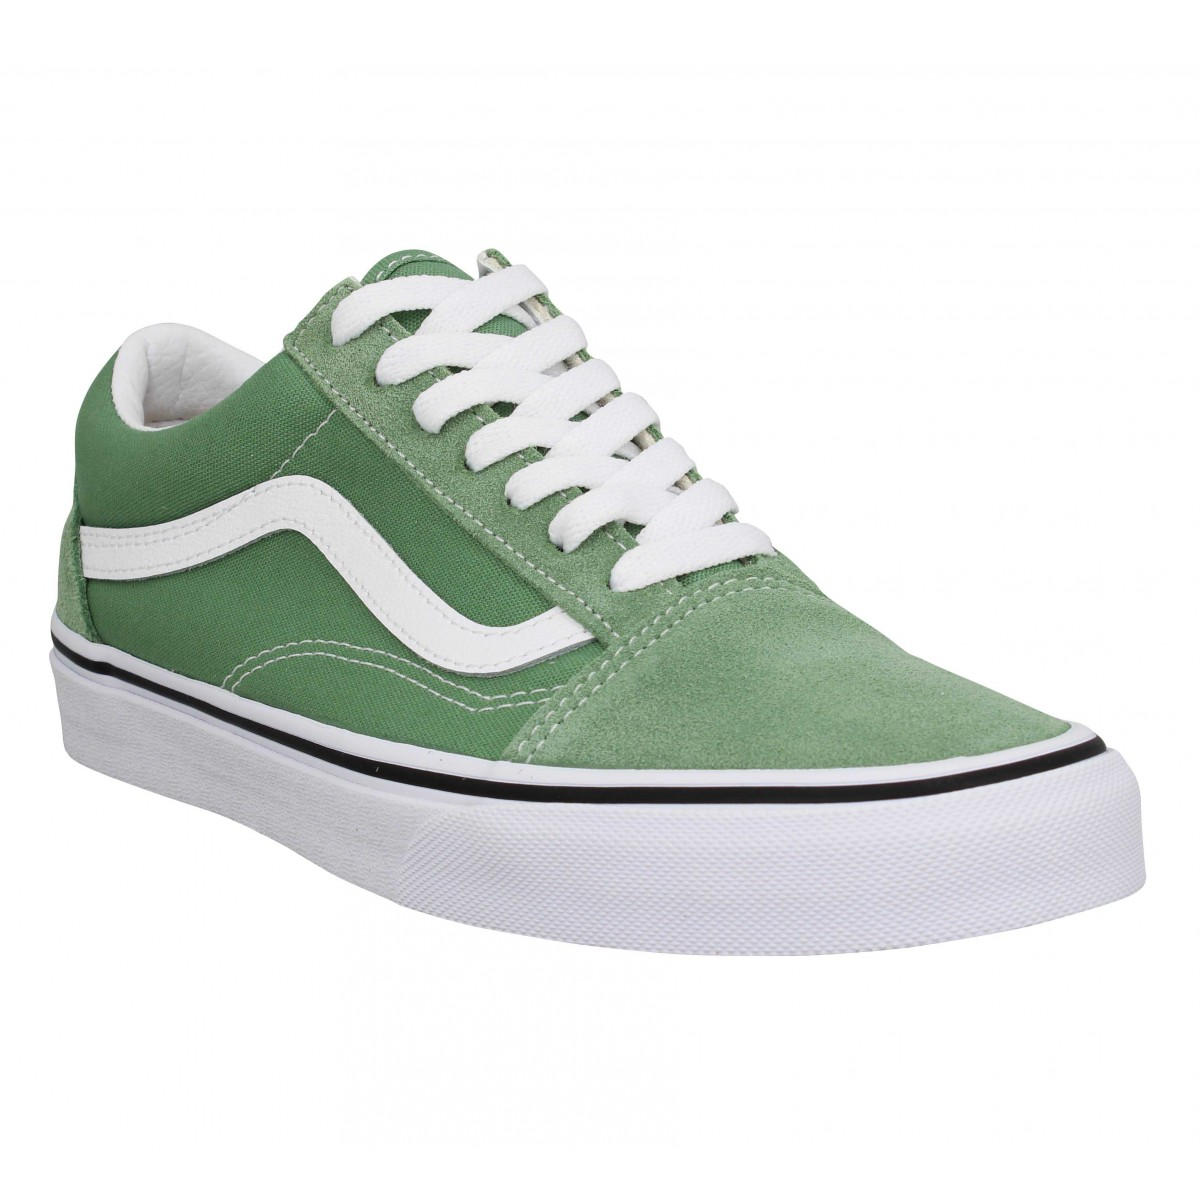 Baskets VANS Old Skool velours toile Green